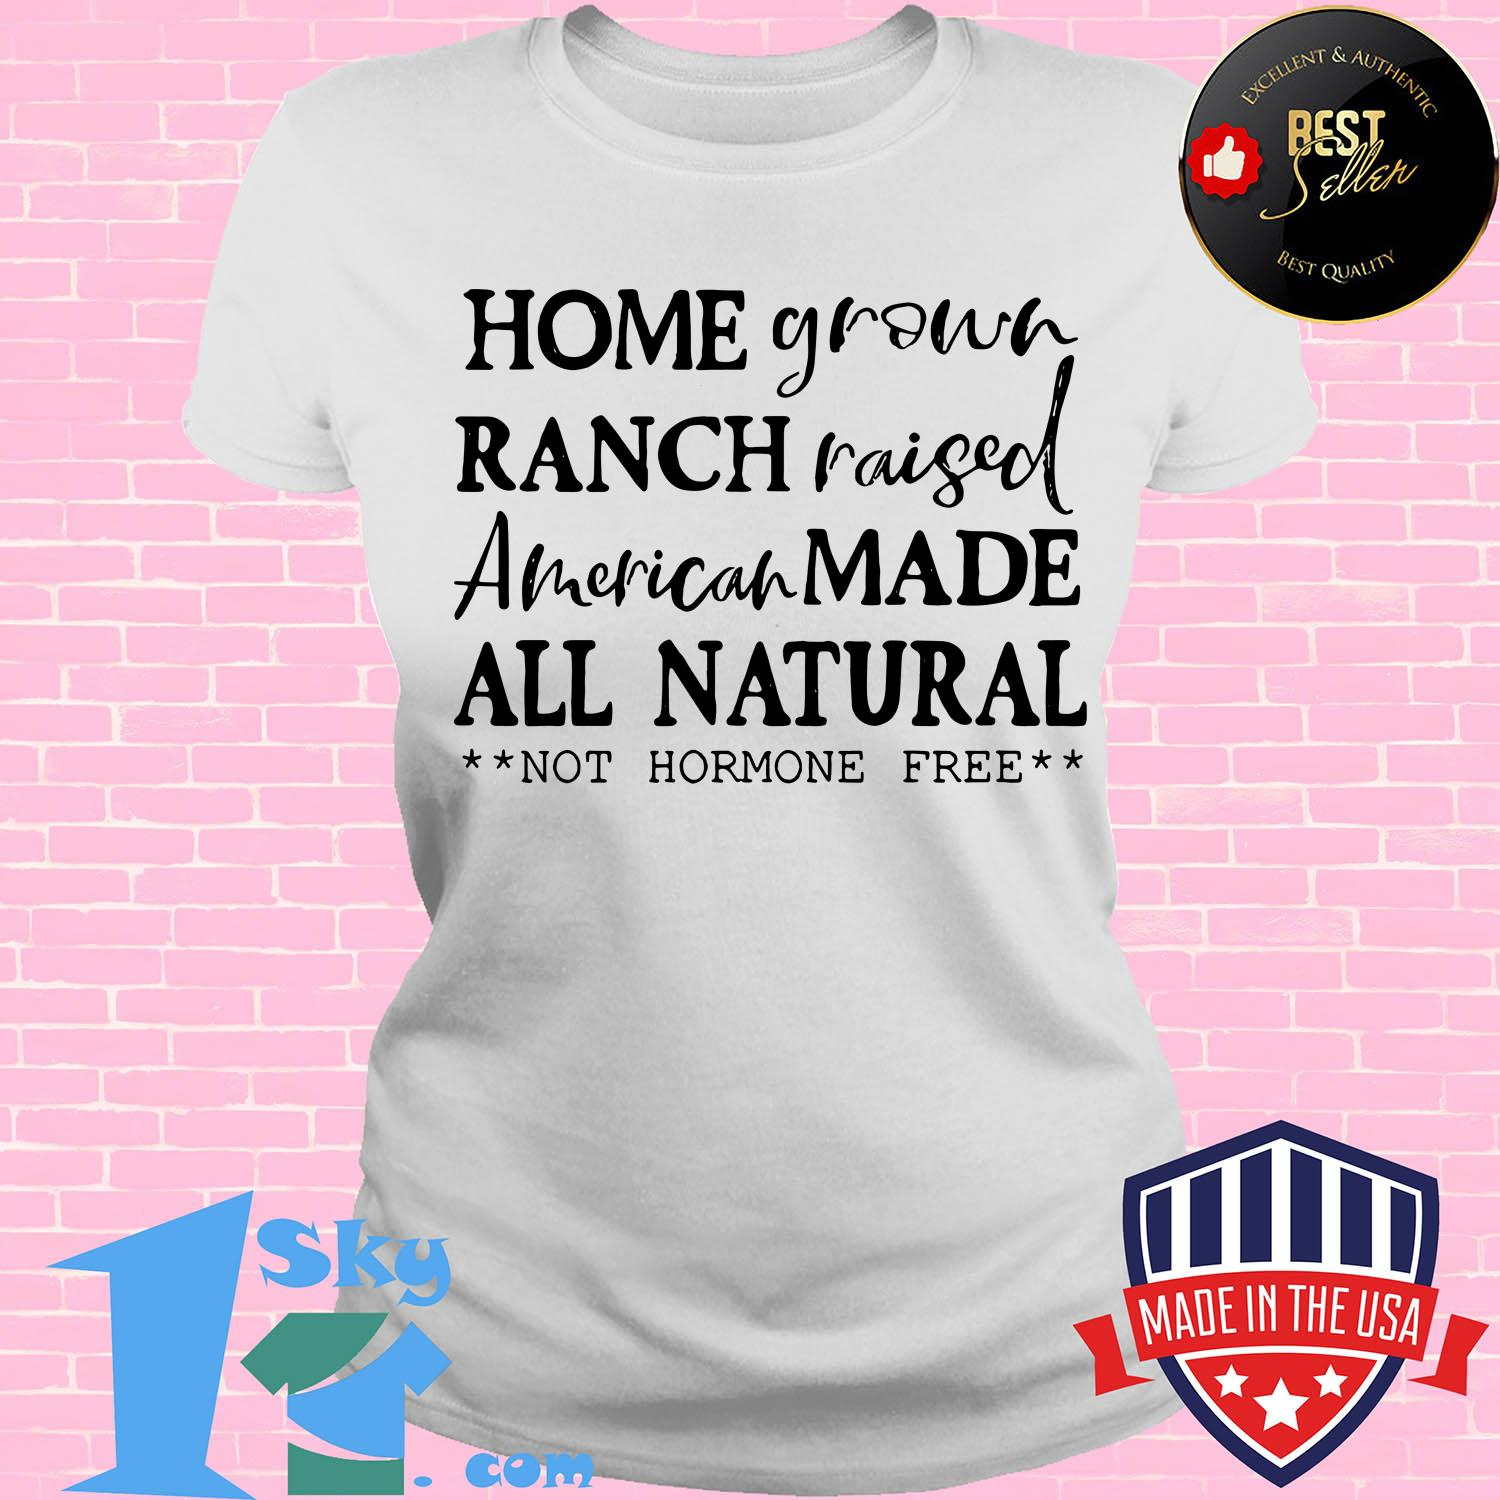 homegrown ranch raised american made all natural not hormone free ladies tee - Homegrown Ranch raised American made All Natural not Hormone free shirt